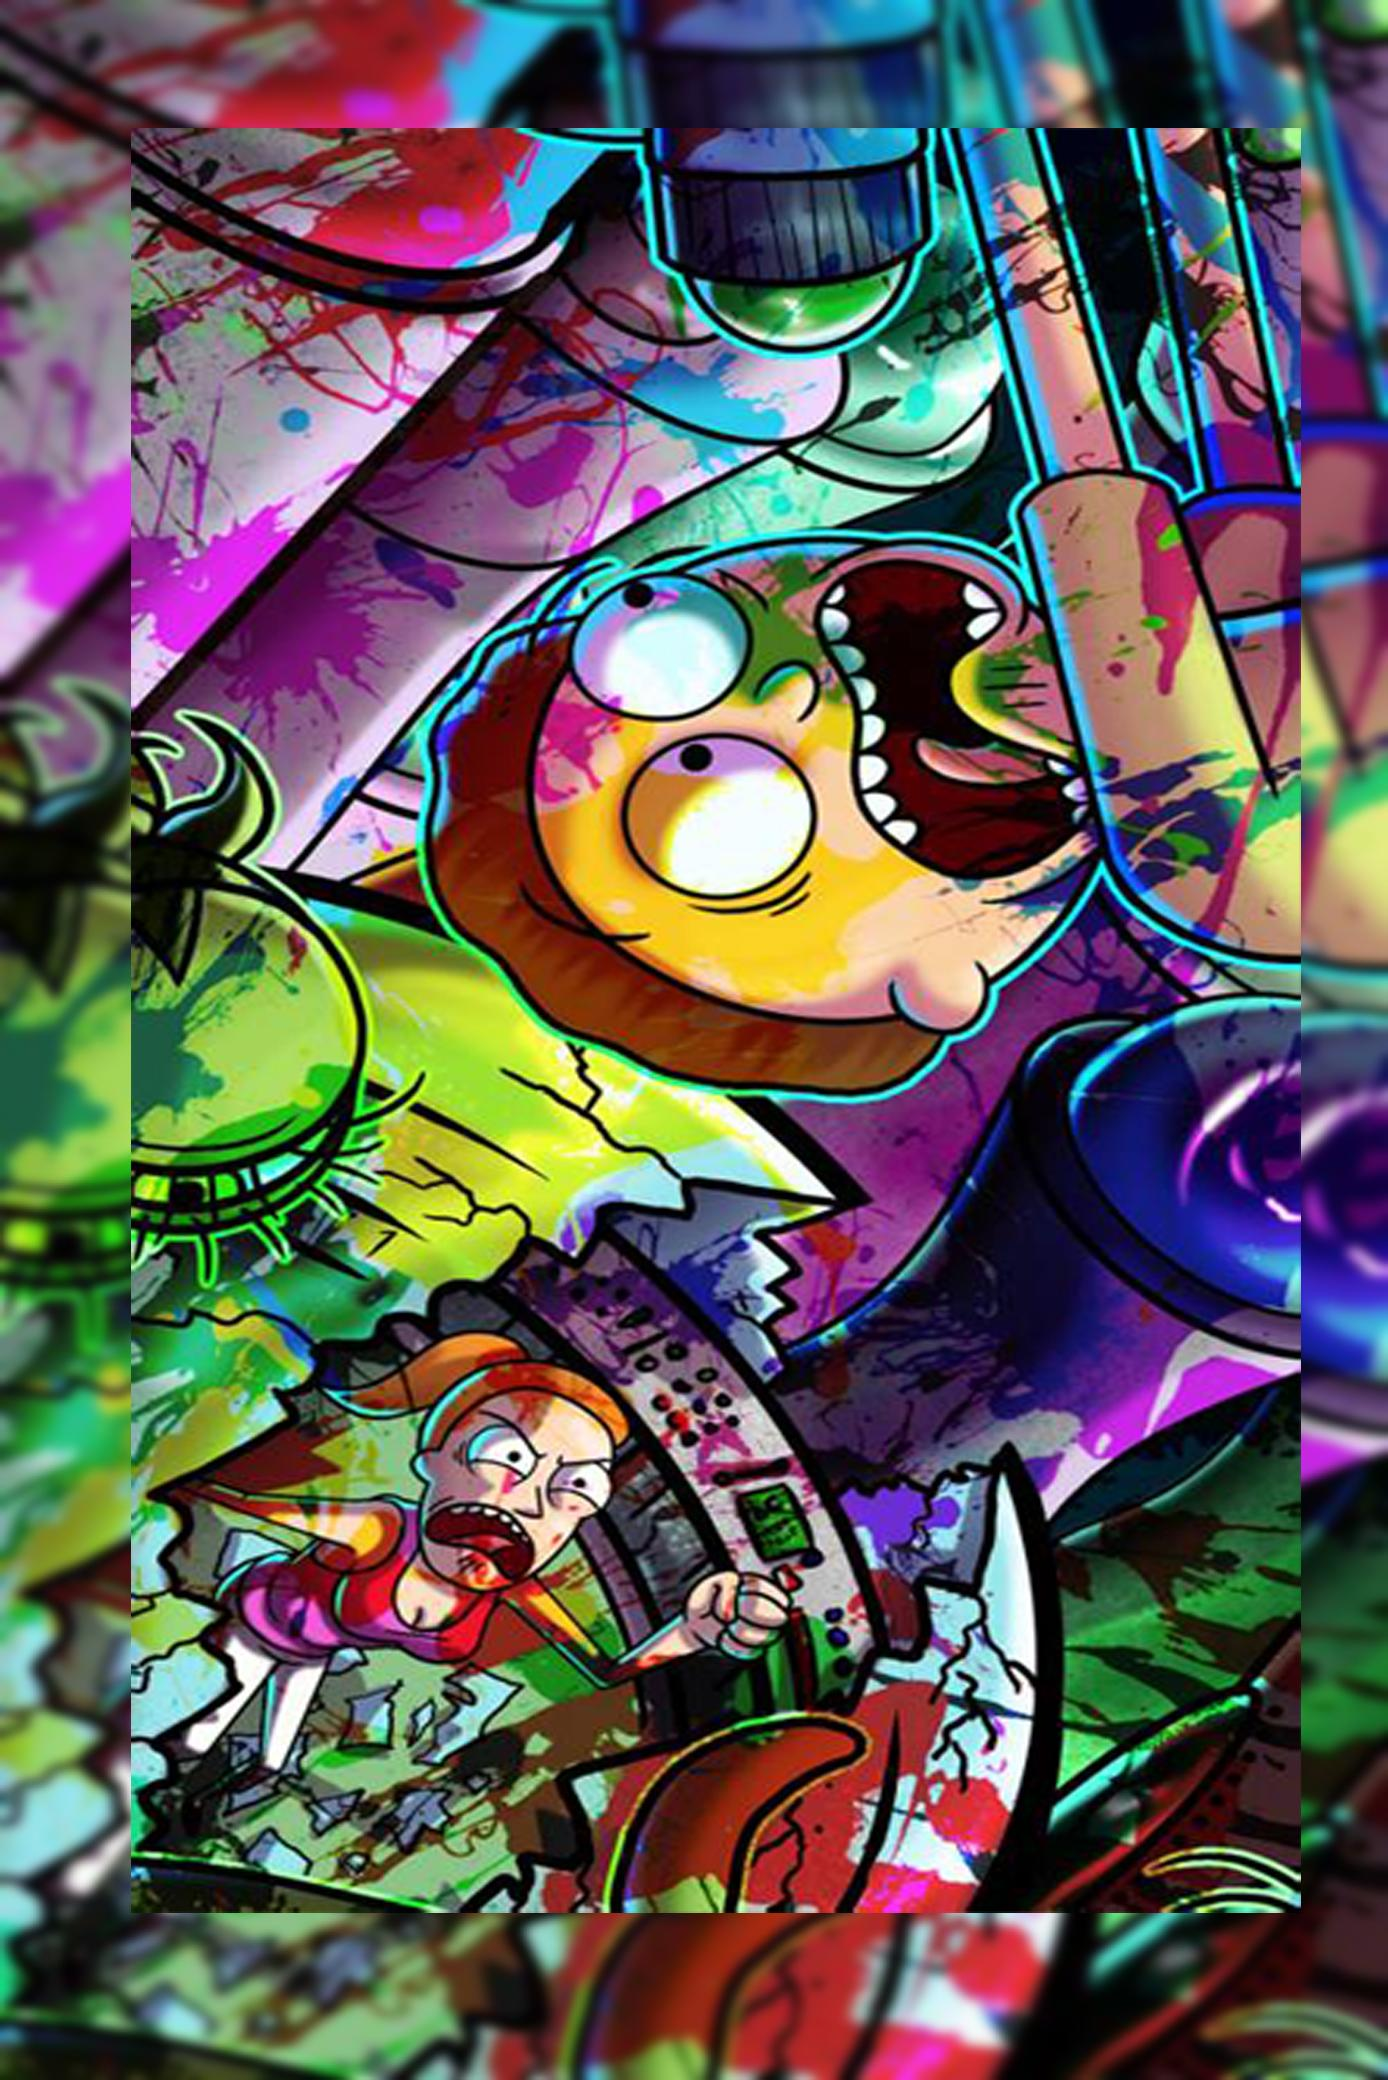 Rick-Morty Wallpaper HD for Android - APK Download